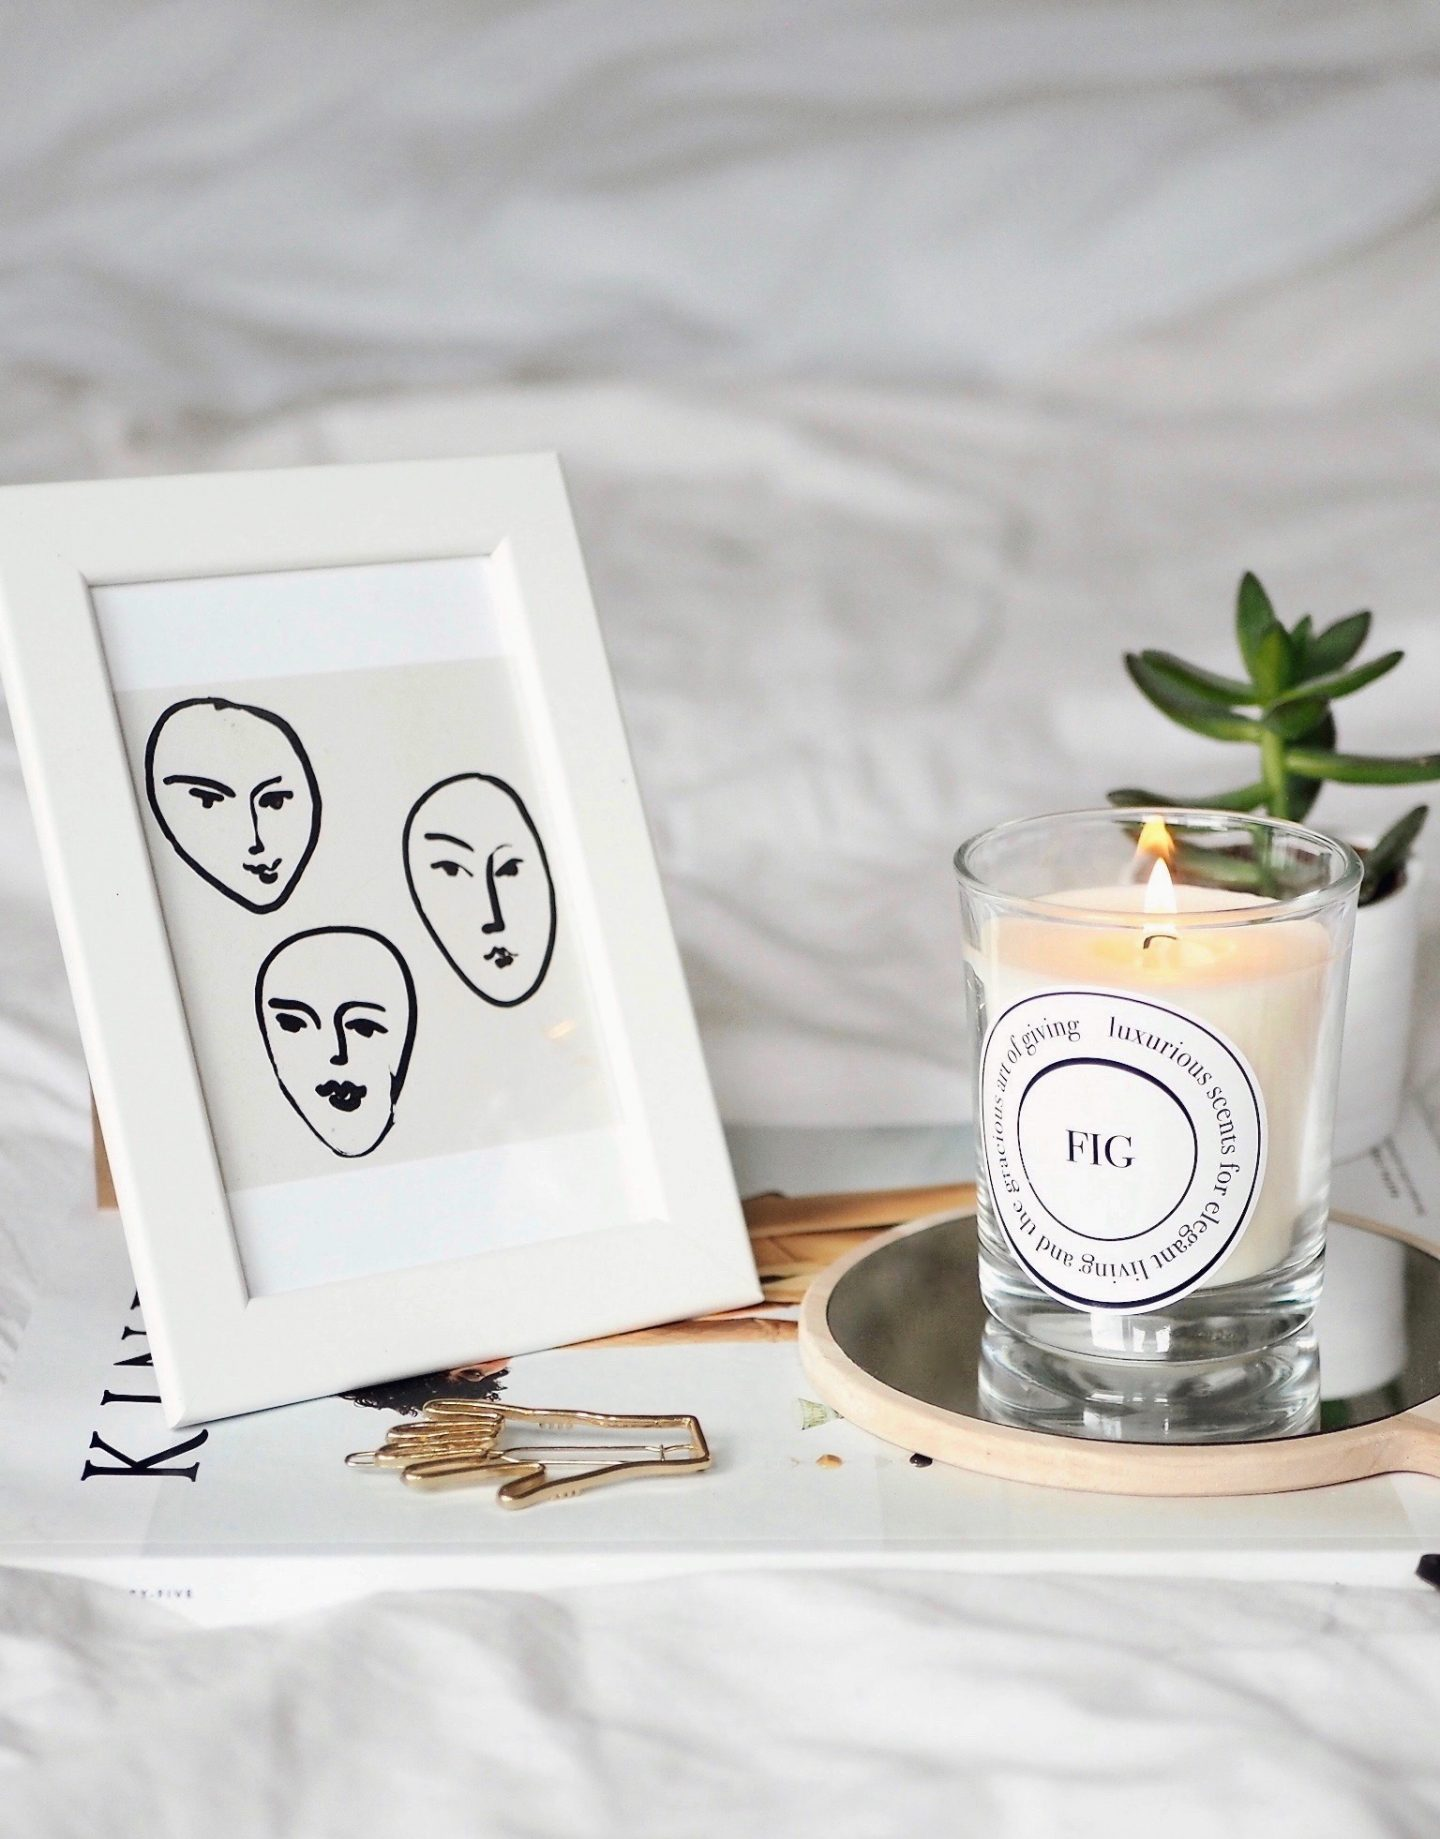 Aldi's Gorgeous Diptyque Candle Dupe